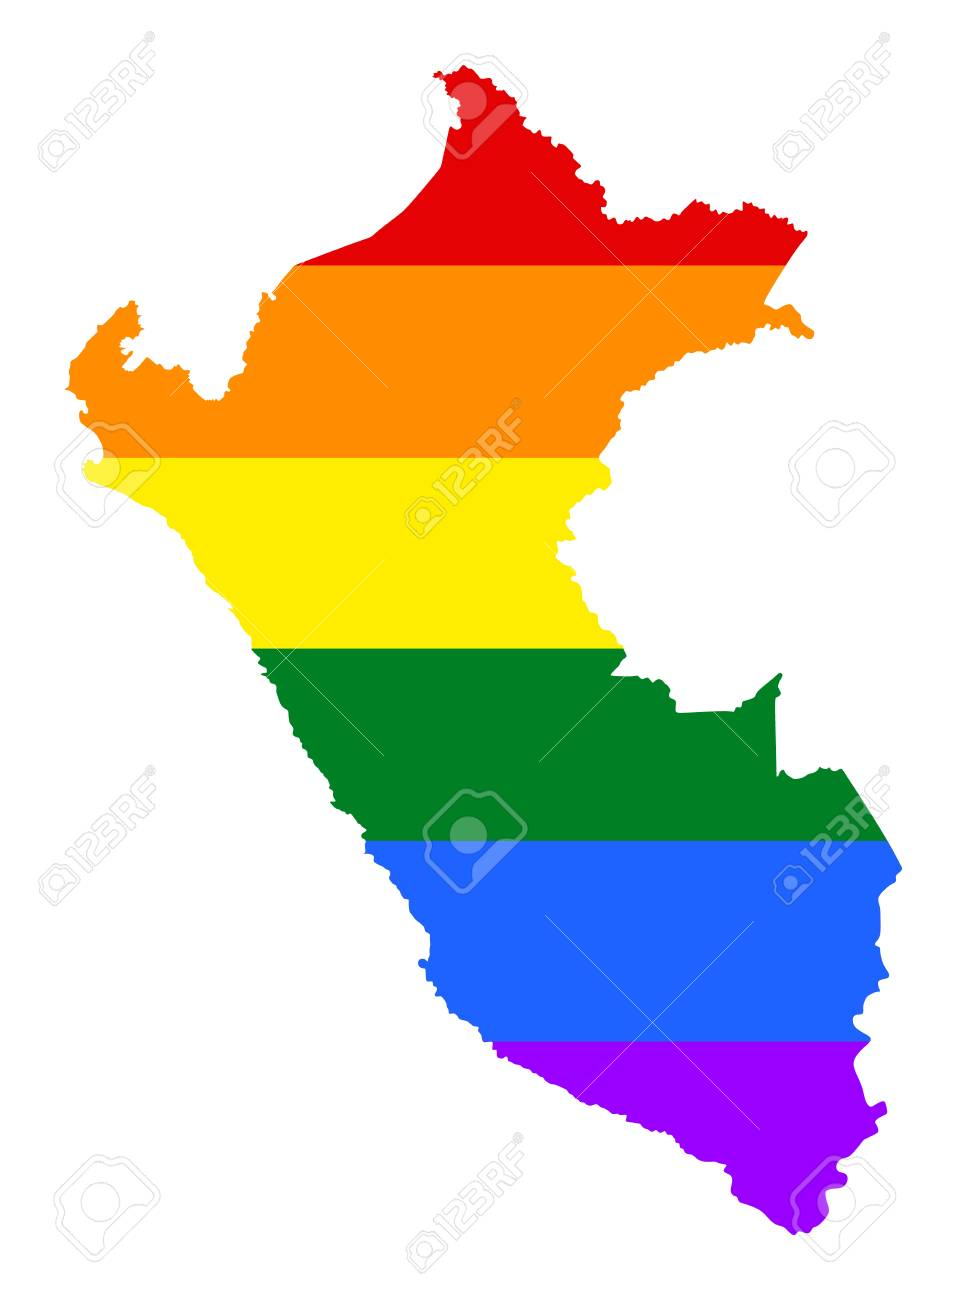 Peru pride gay map with rainbow flag colors. South America. Gay flag over  Peru